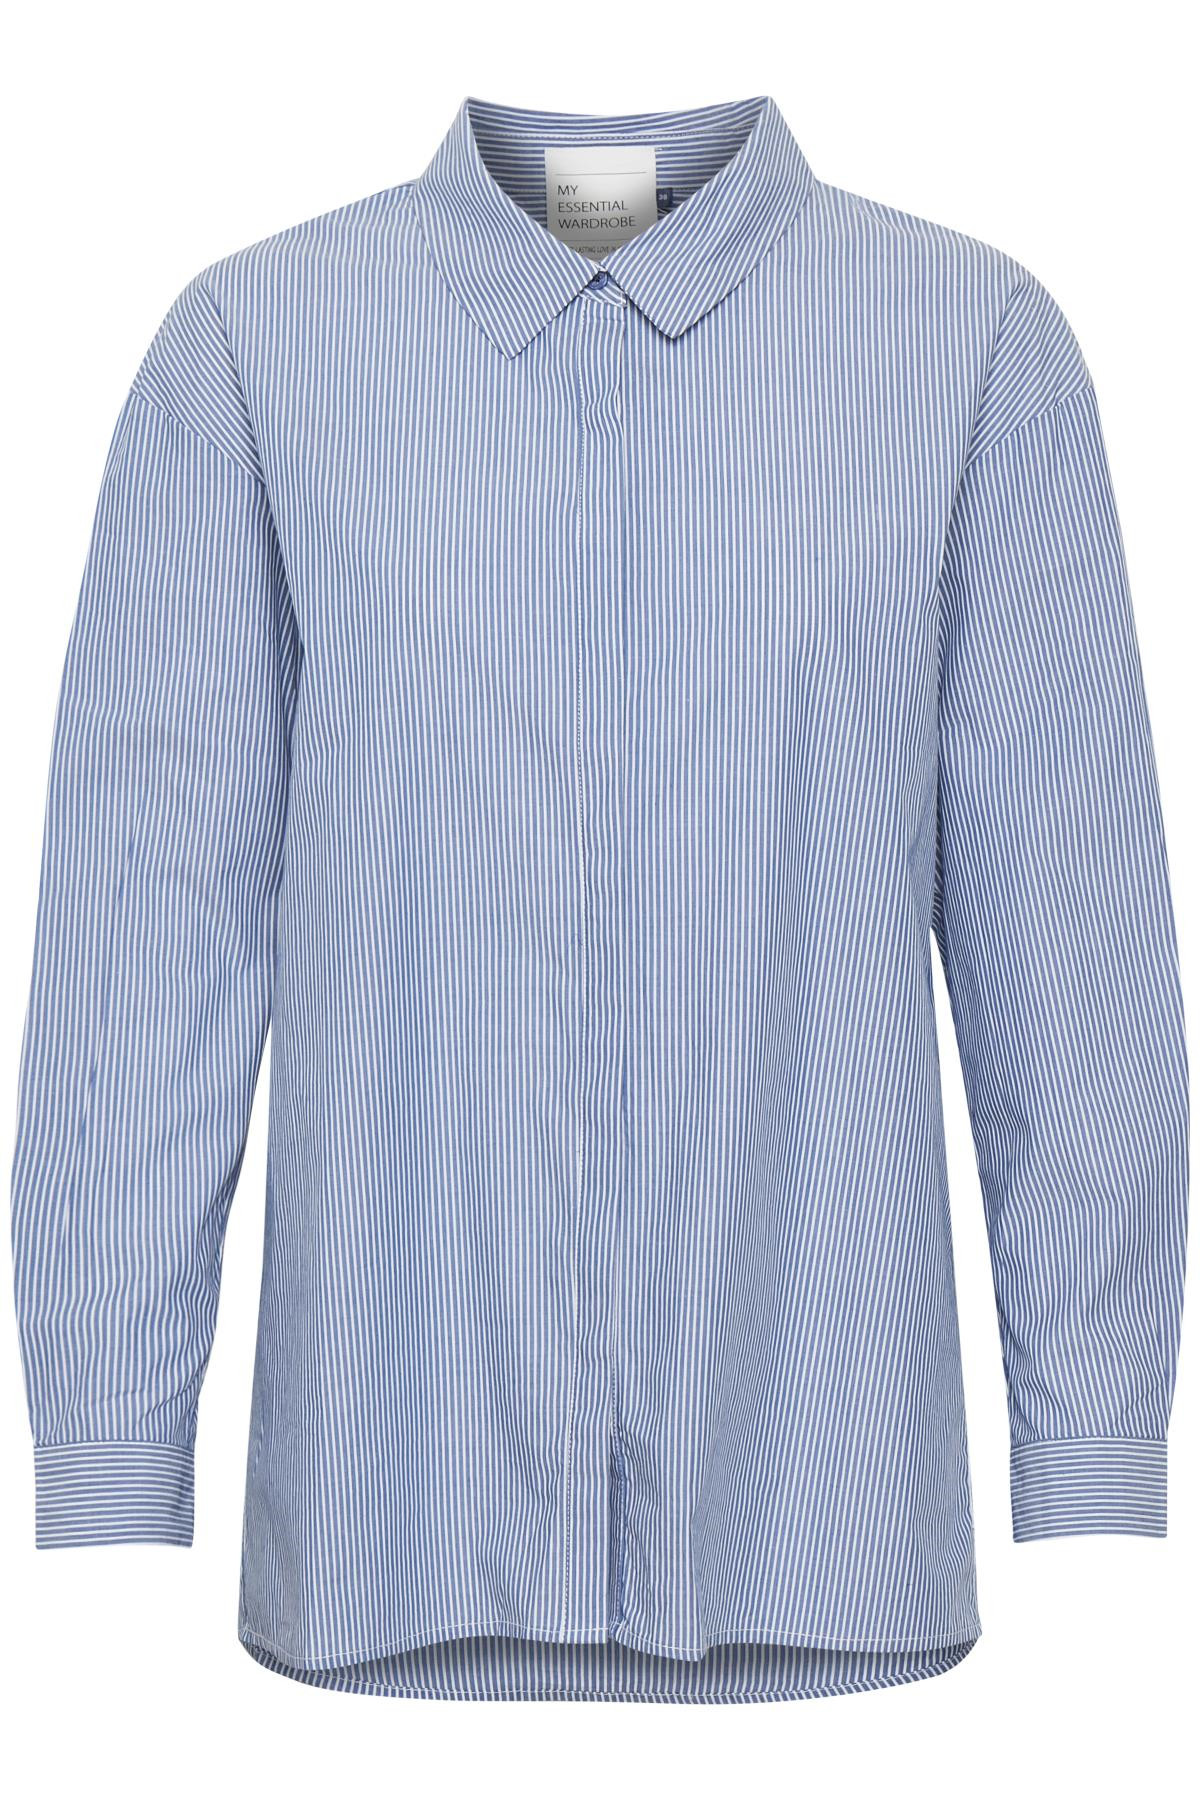 Image of   Denim Hunter 03 THE SHIRT 10702539 S (Striped Medium Blue 38076, 34)